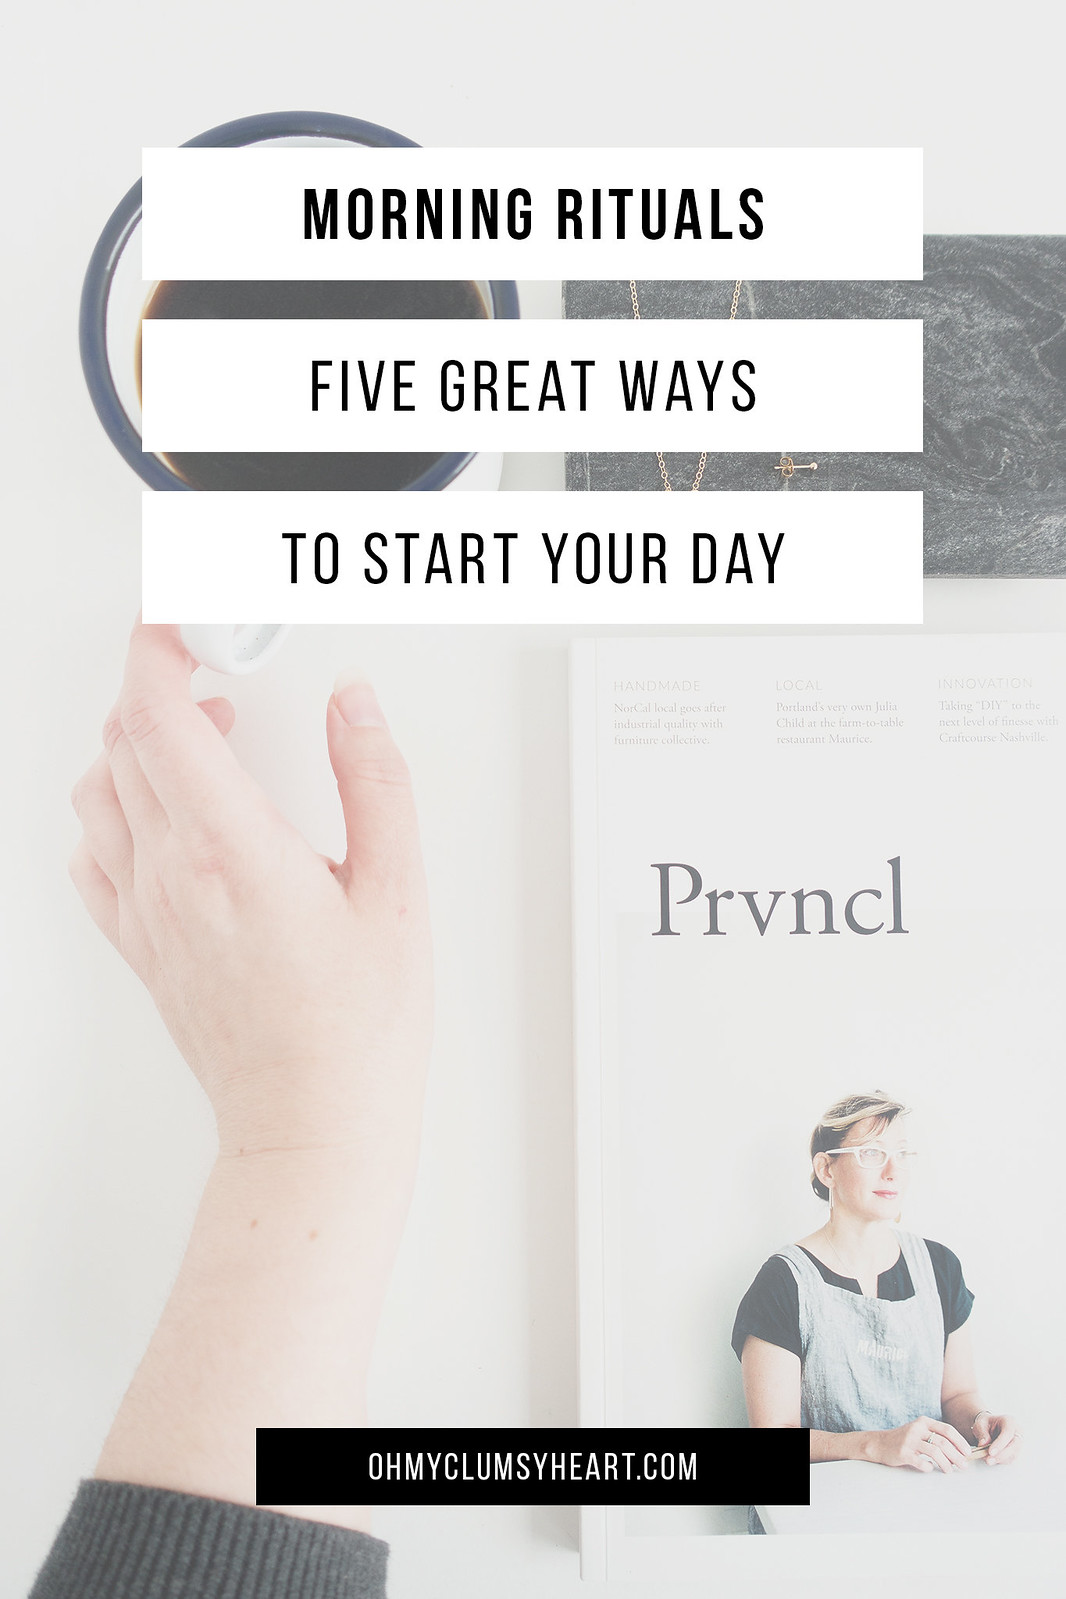 Morning Rituals: 5 Great Ways To Start Your Day